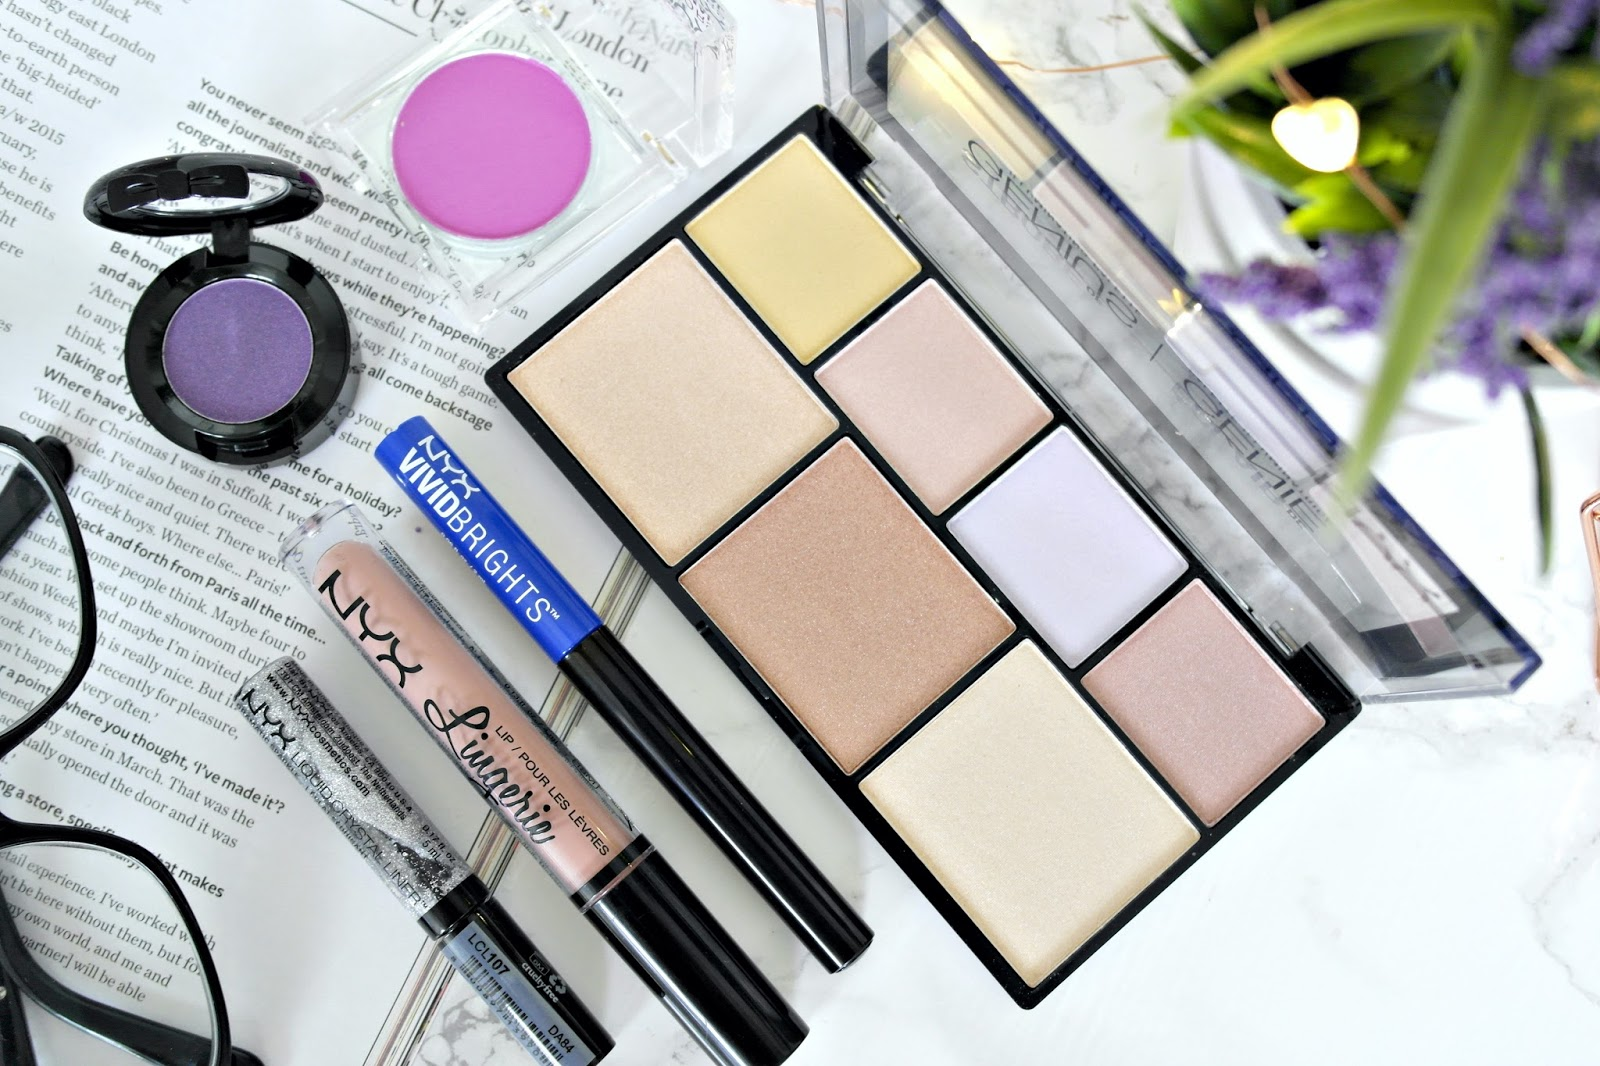 NYX Makeup haul, beauty blogger, review